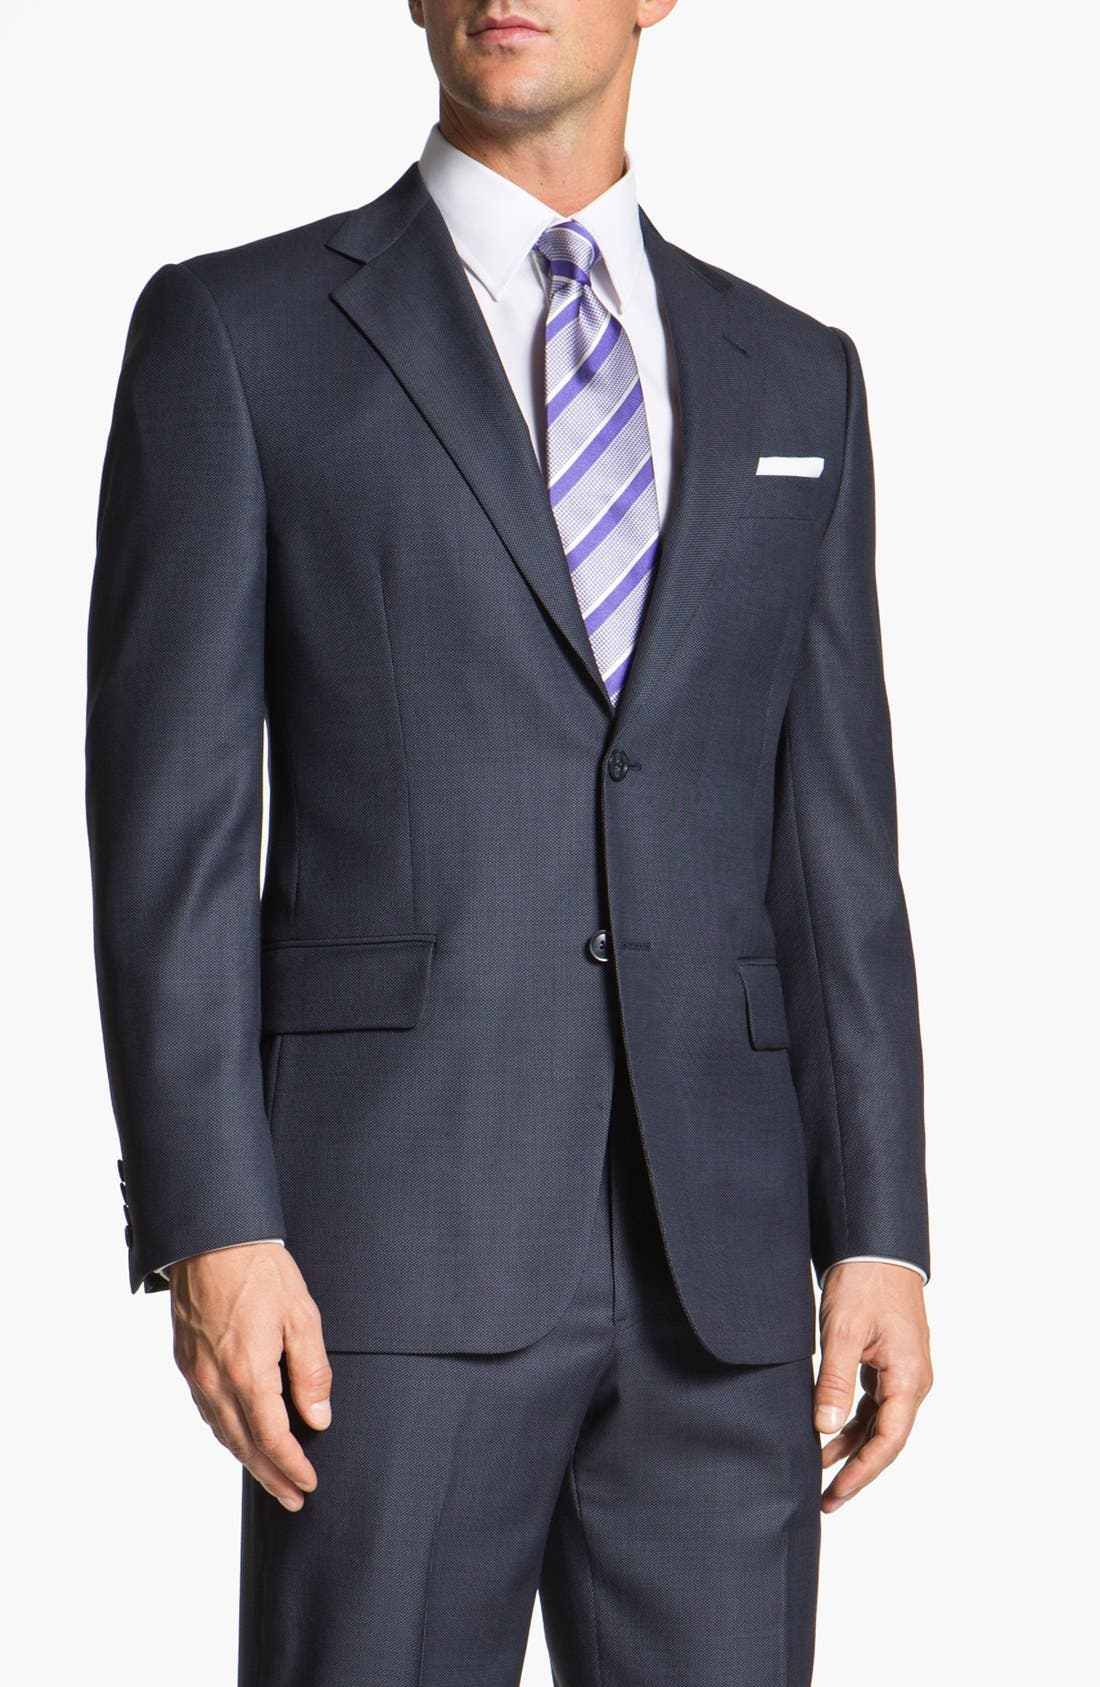 Main Image - Joseph Abboud 'Signature Silver' Wool Suit (Online Only)